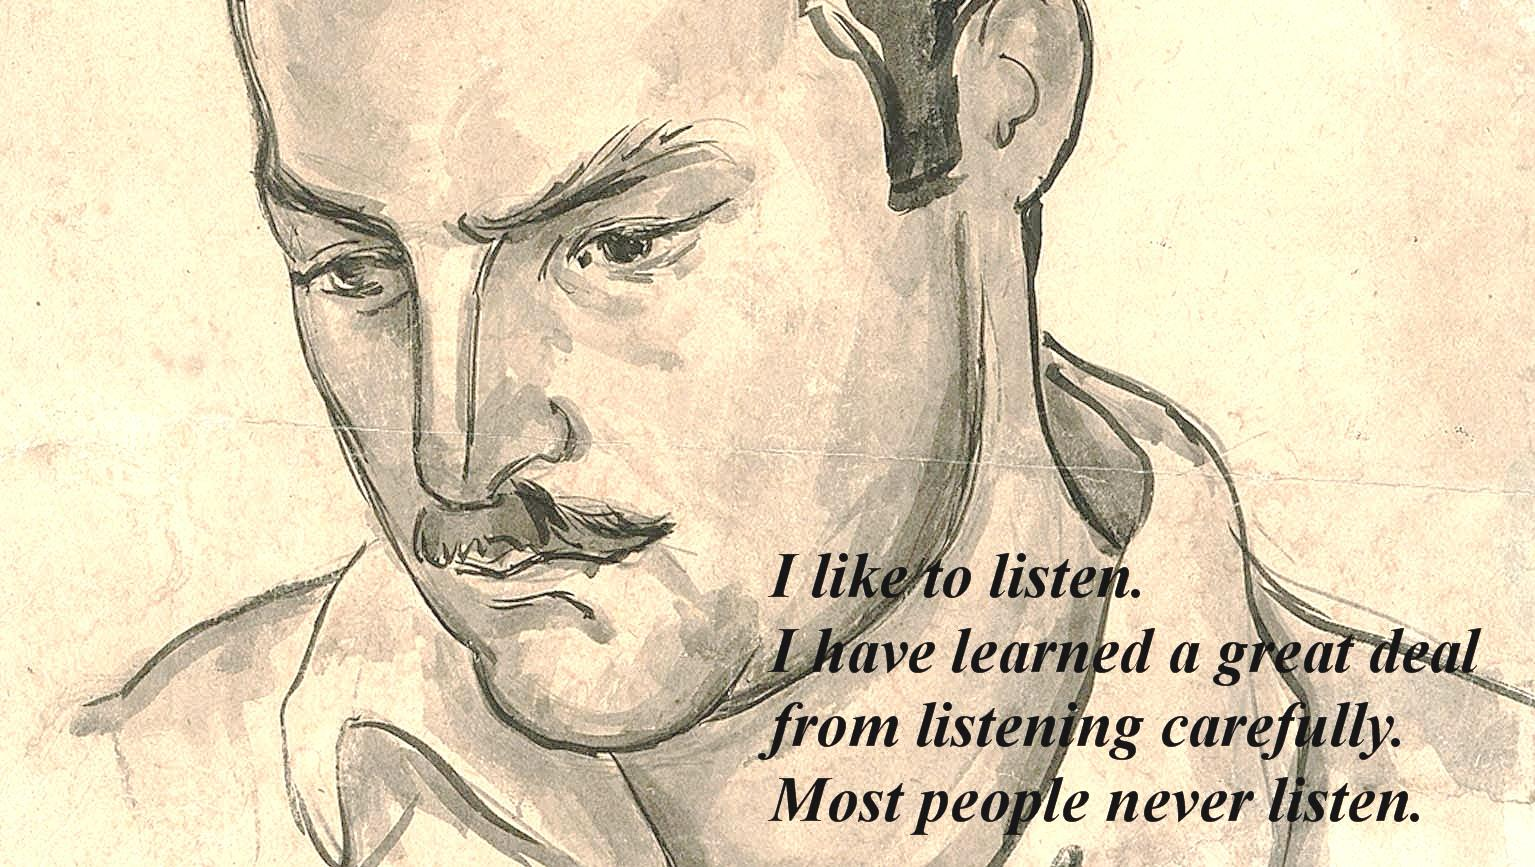 I like to listen. I have learned a great deal from listening carefully. Most people never listen. E. Hemingway (1535×867)